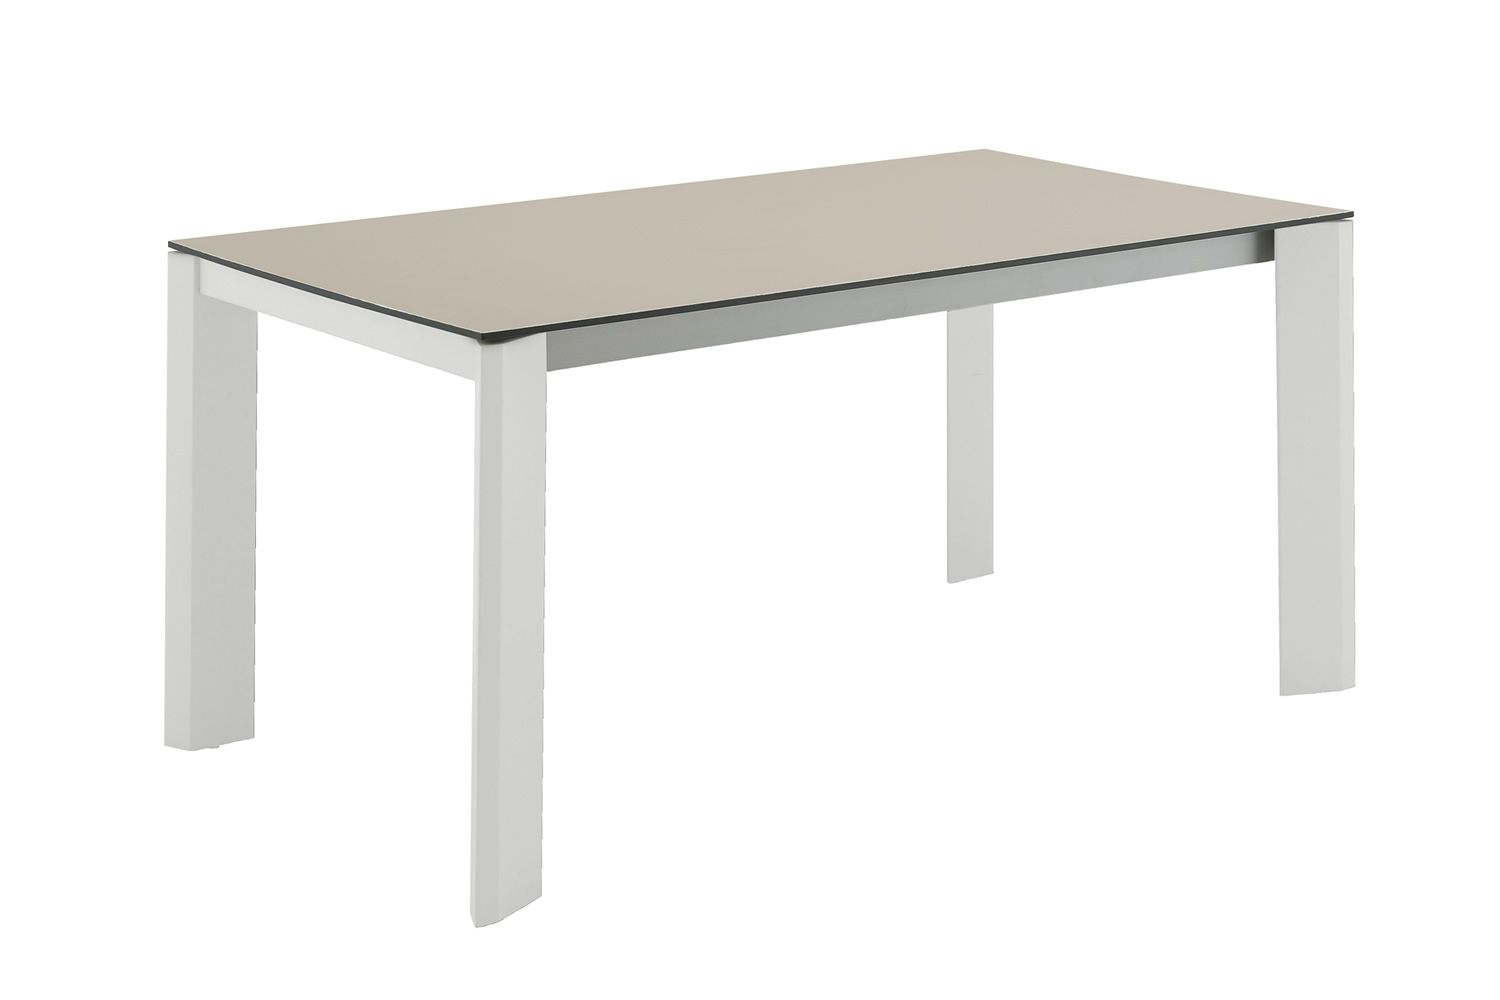 Neos 160 table domitalia en m tal plateau en verre ou for Table extensible 160